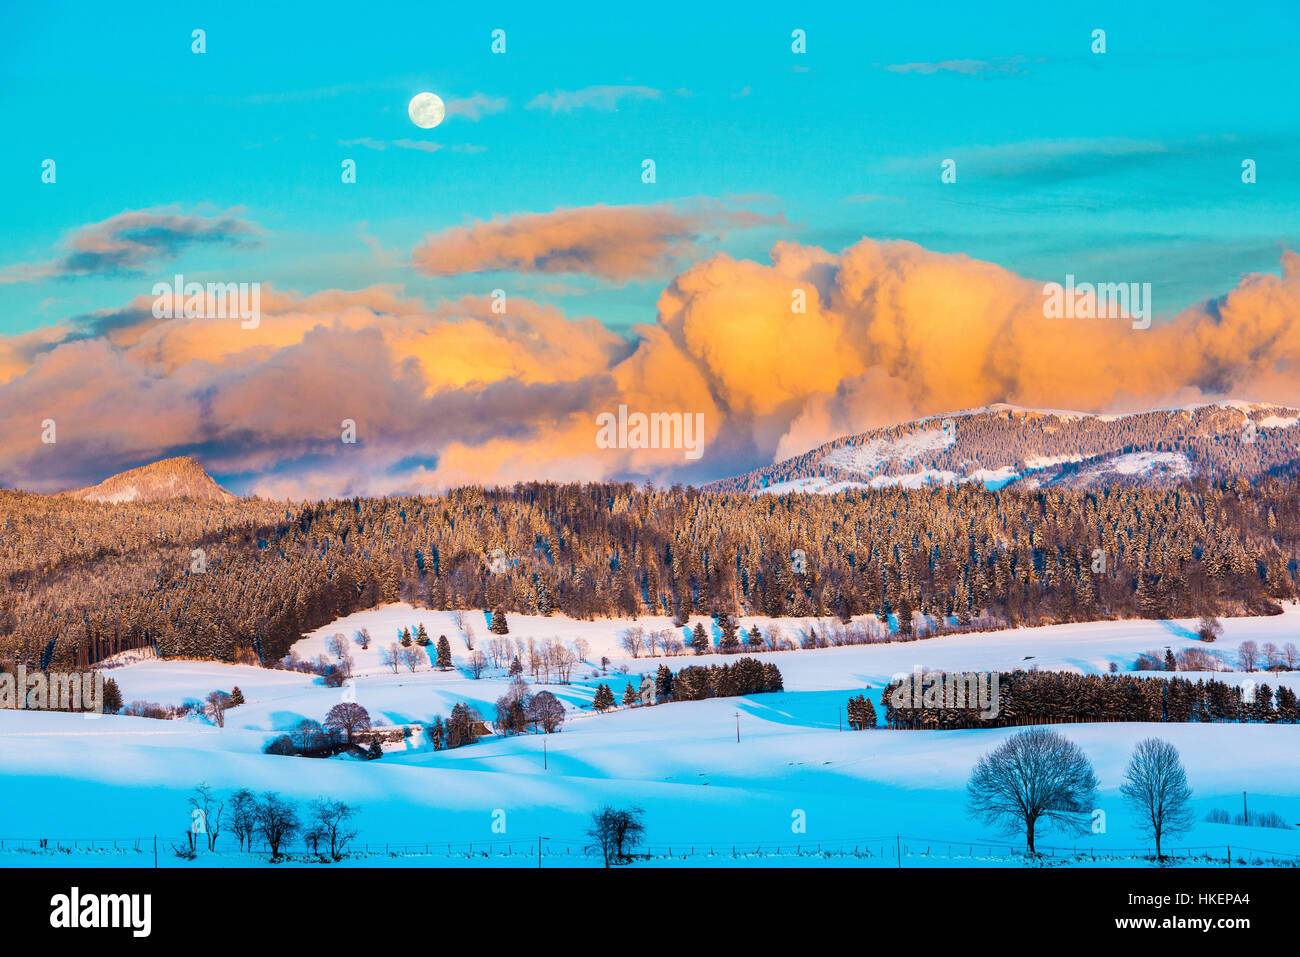 Sunset over the Métabief Valley (north-eastern France) in the Jura mountain range covered in snow. - Stock Image